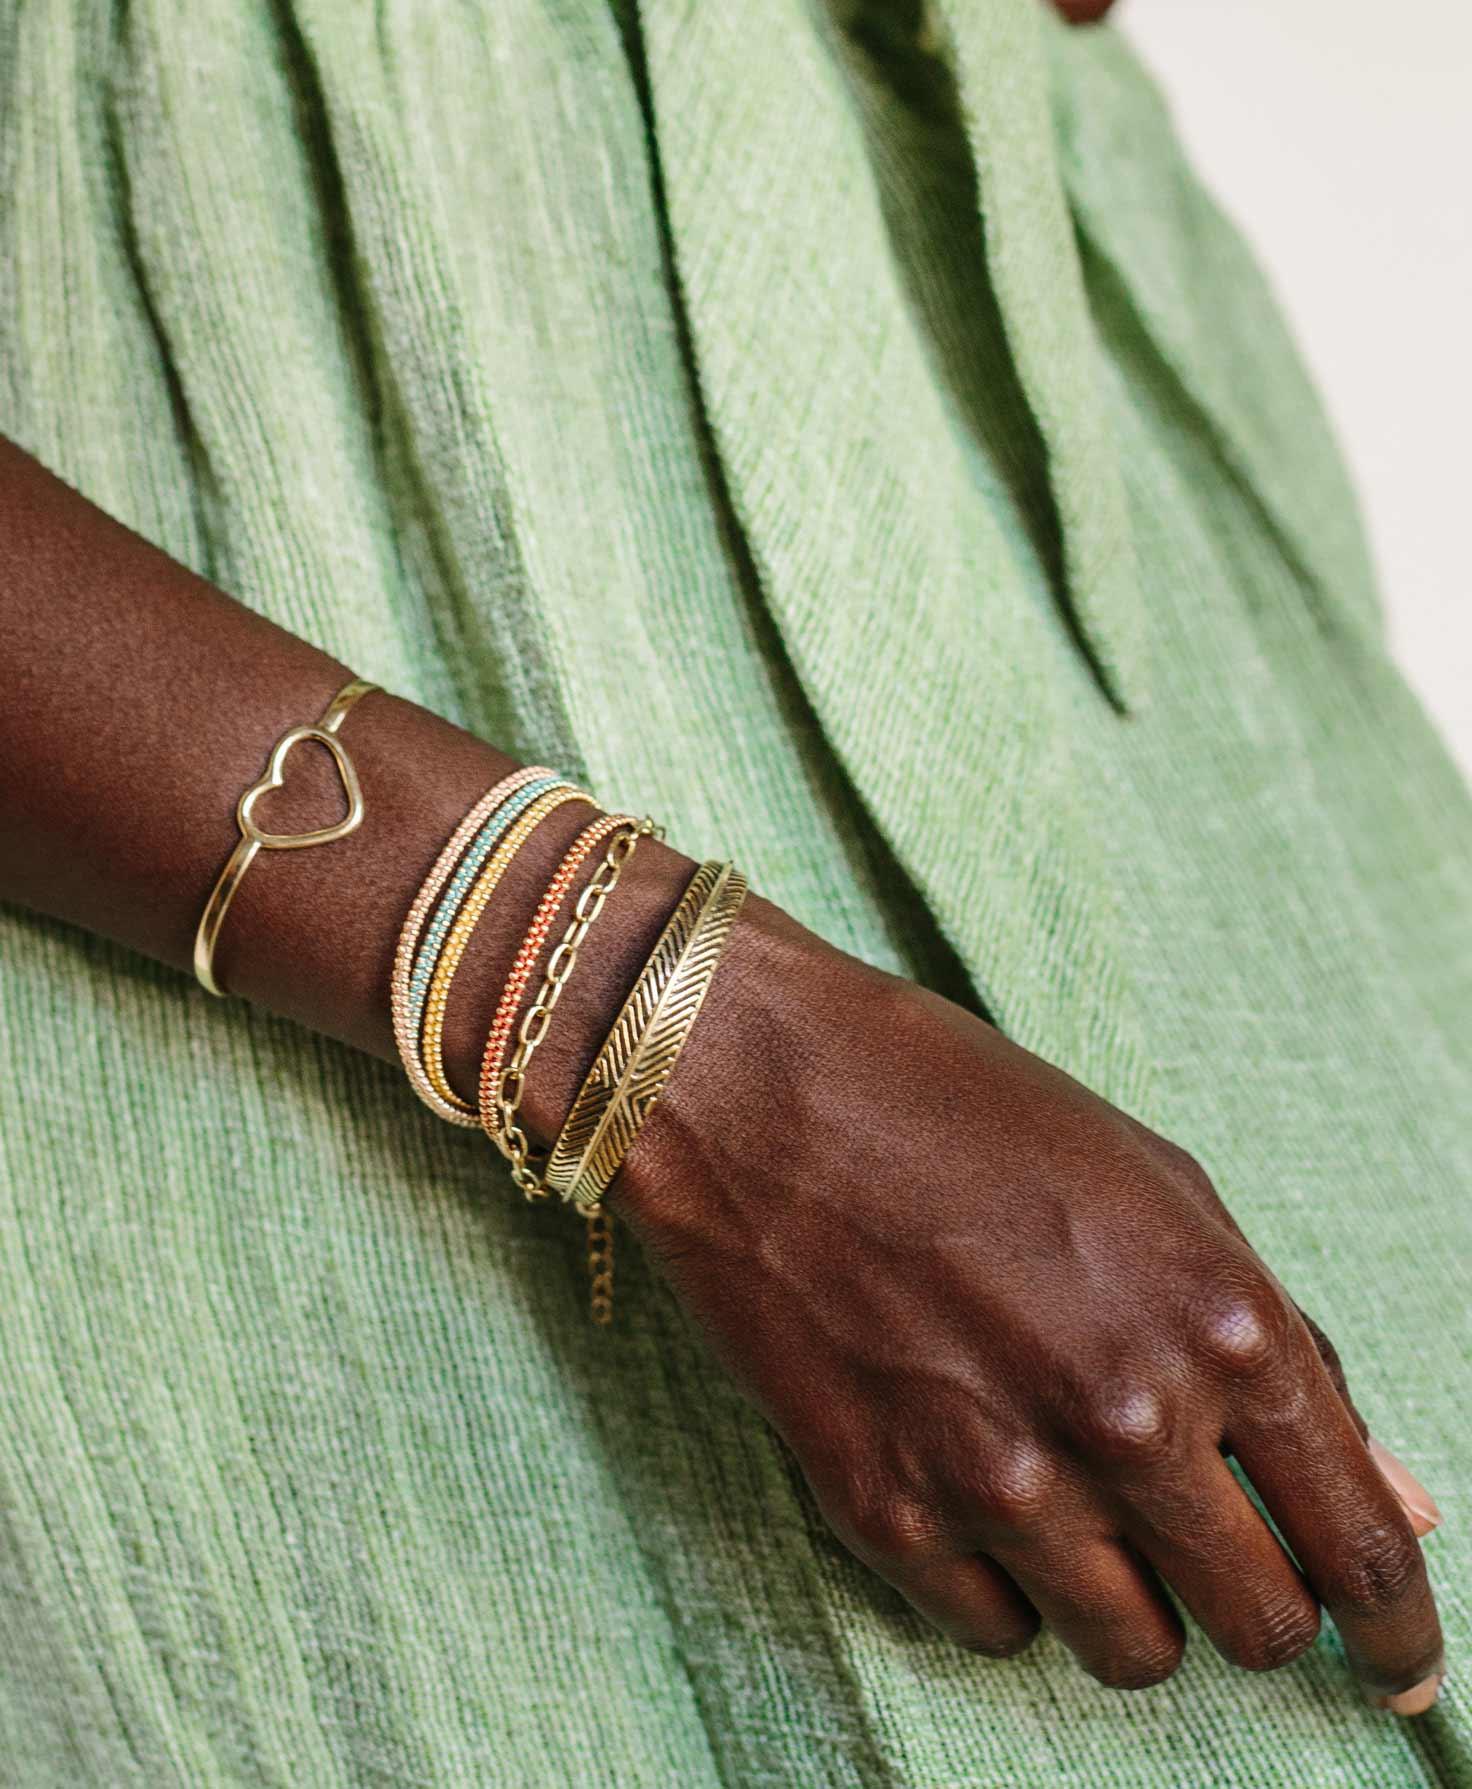 A model's arm is shown resting against her side. On her wrist she wears the Color Blocked Wrap Bracelet paired with a stack of other bracelets, including the Apex Cuff, Expression Cuff, and Infinity Bracelet.